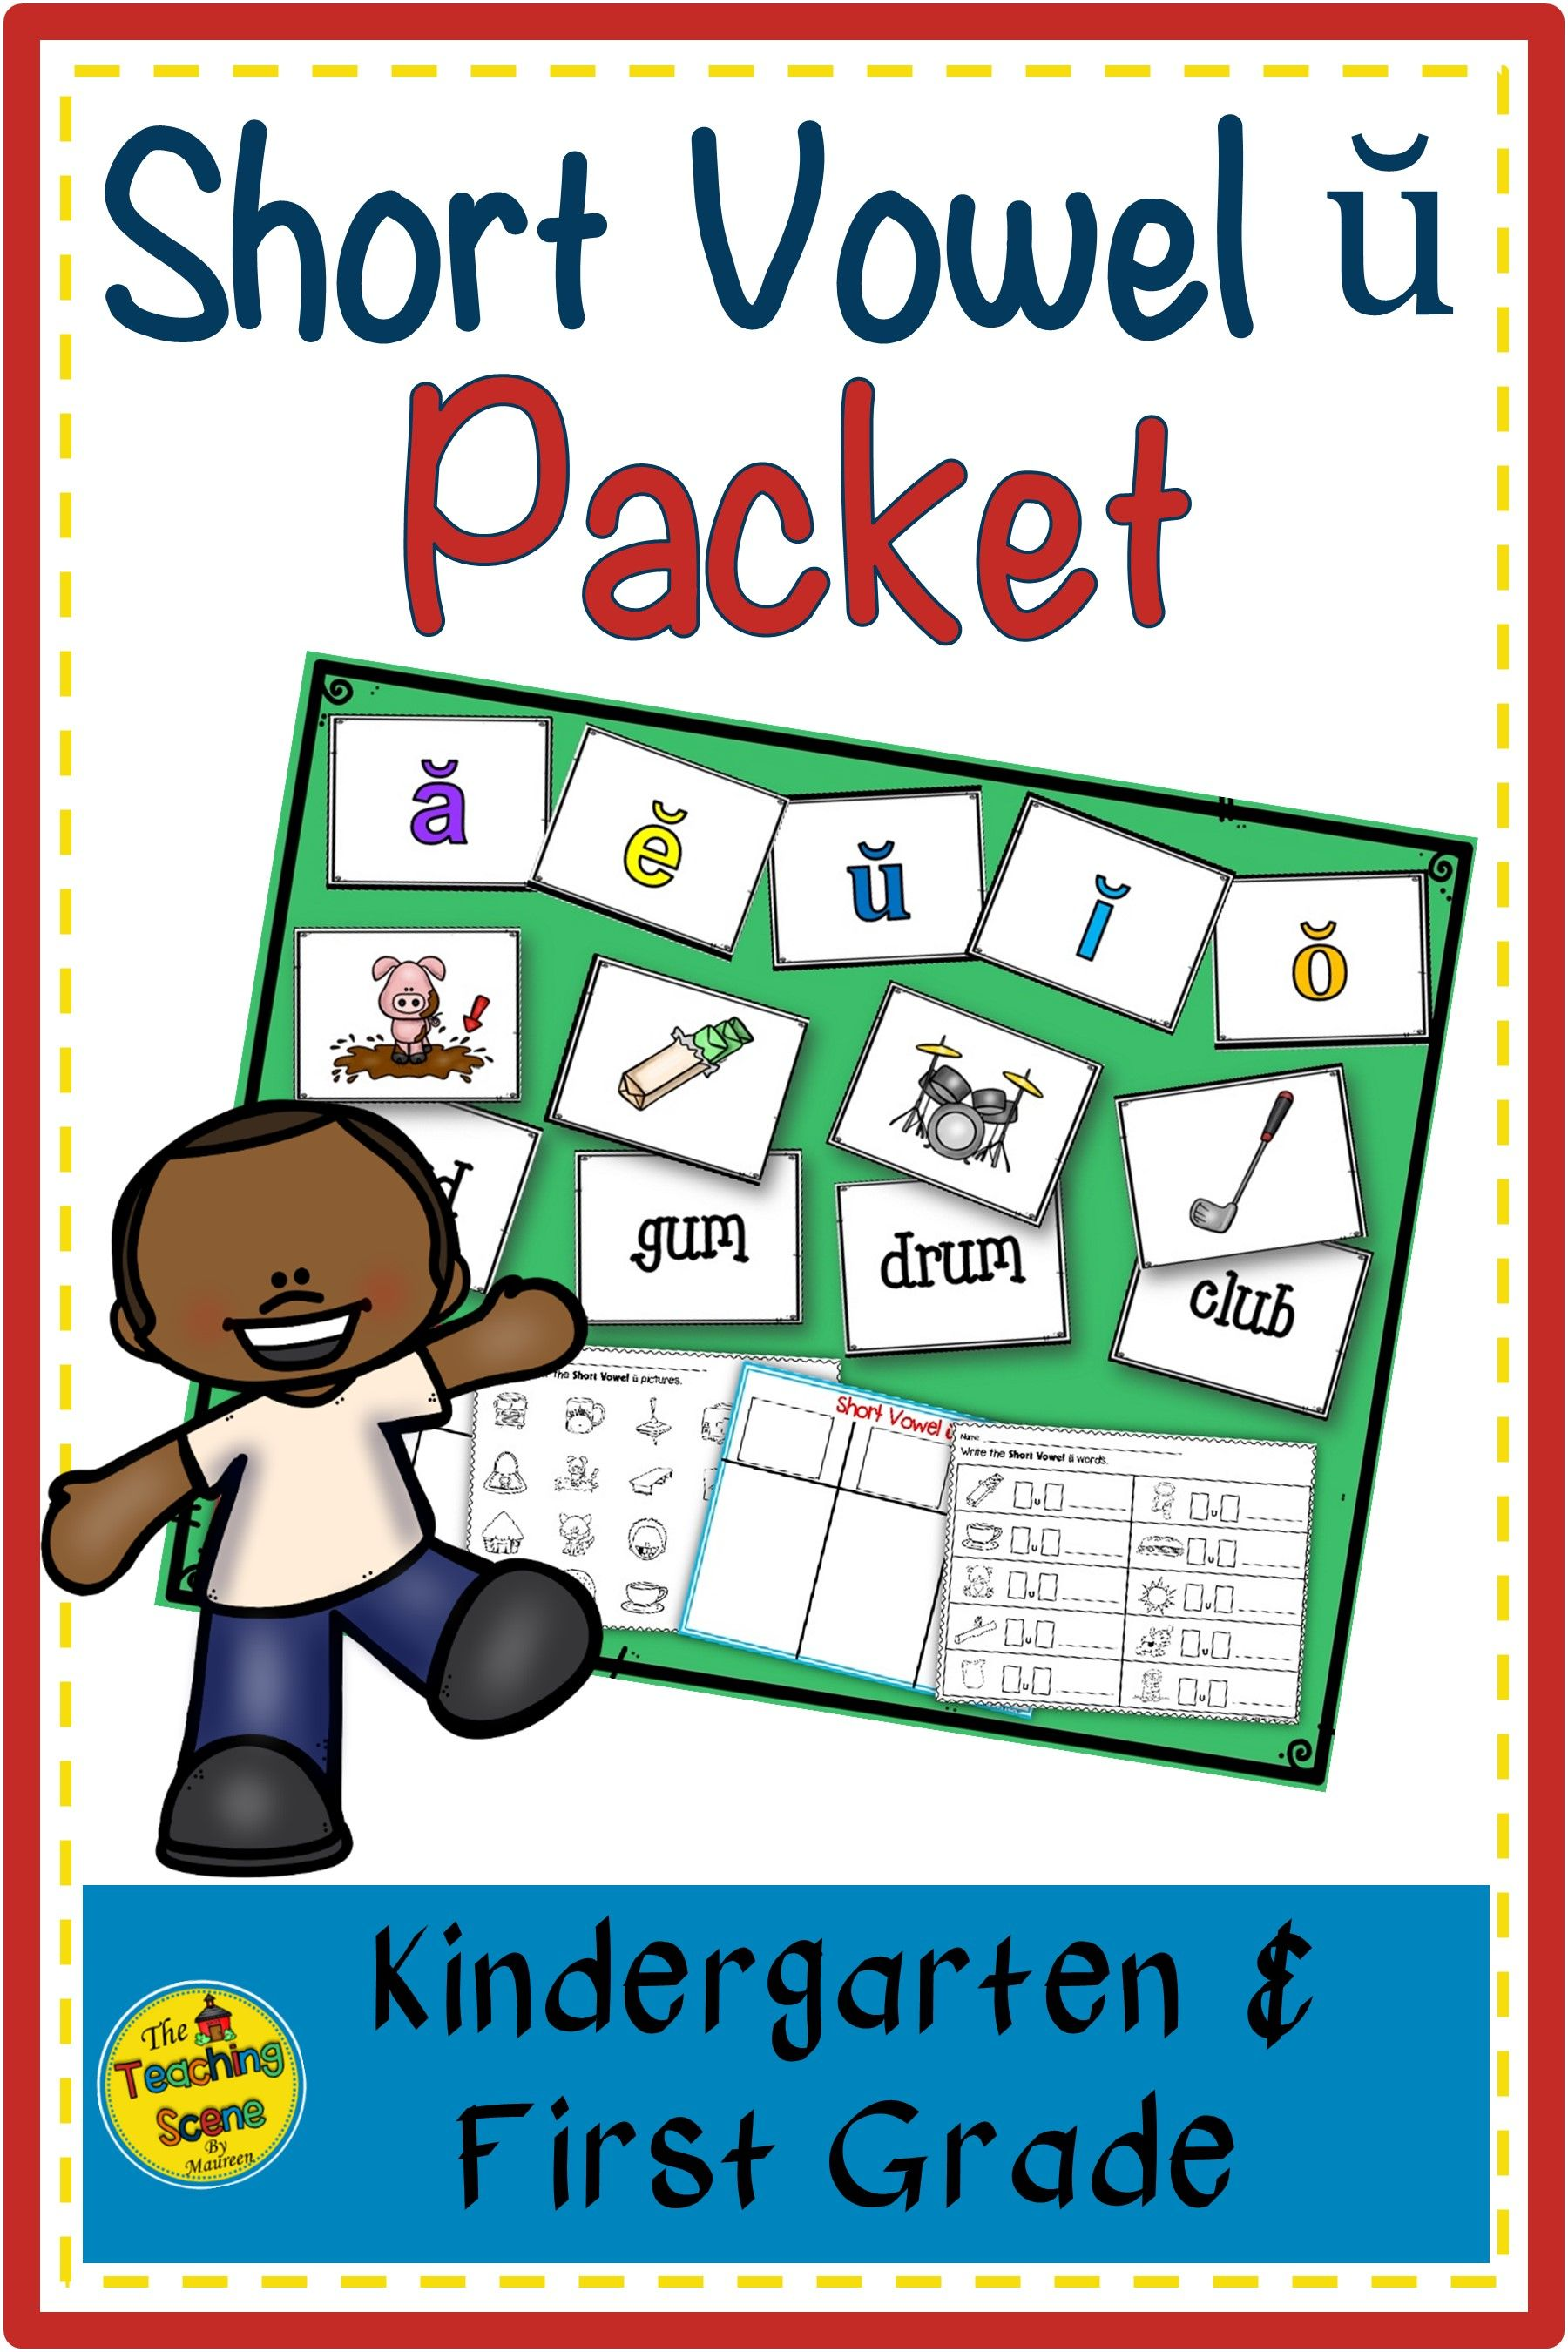 Short Vowel Ready Made Packet In